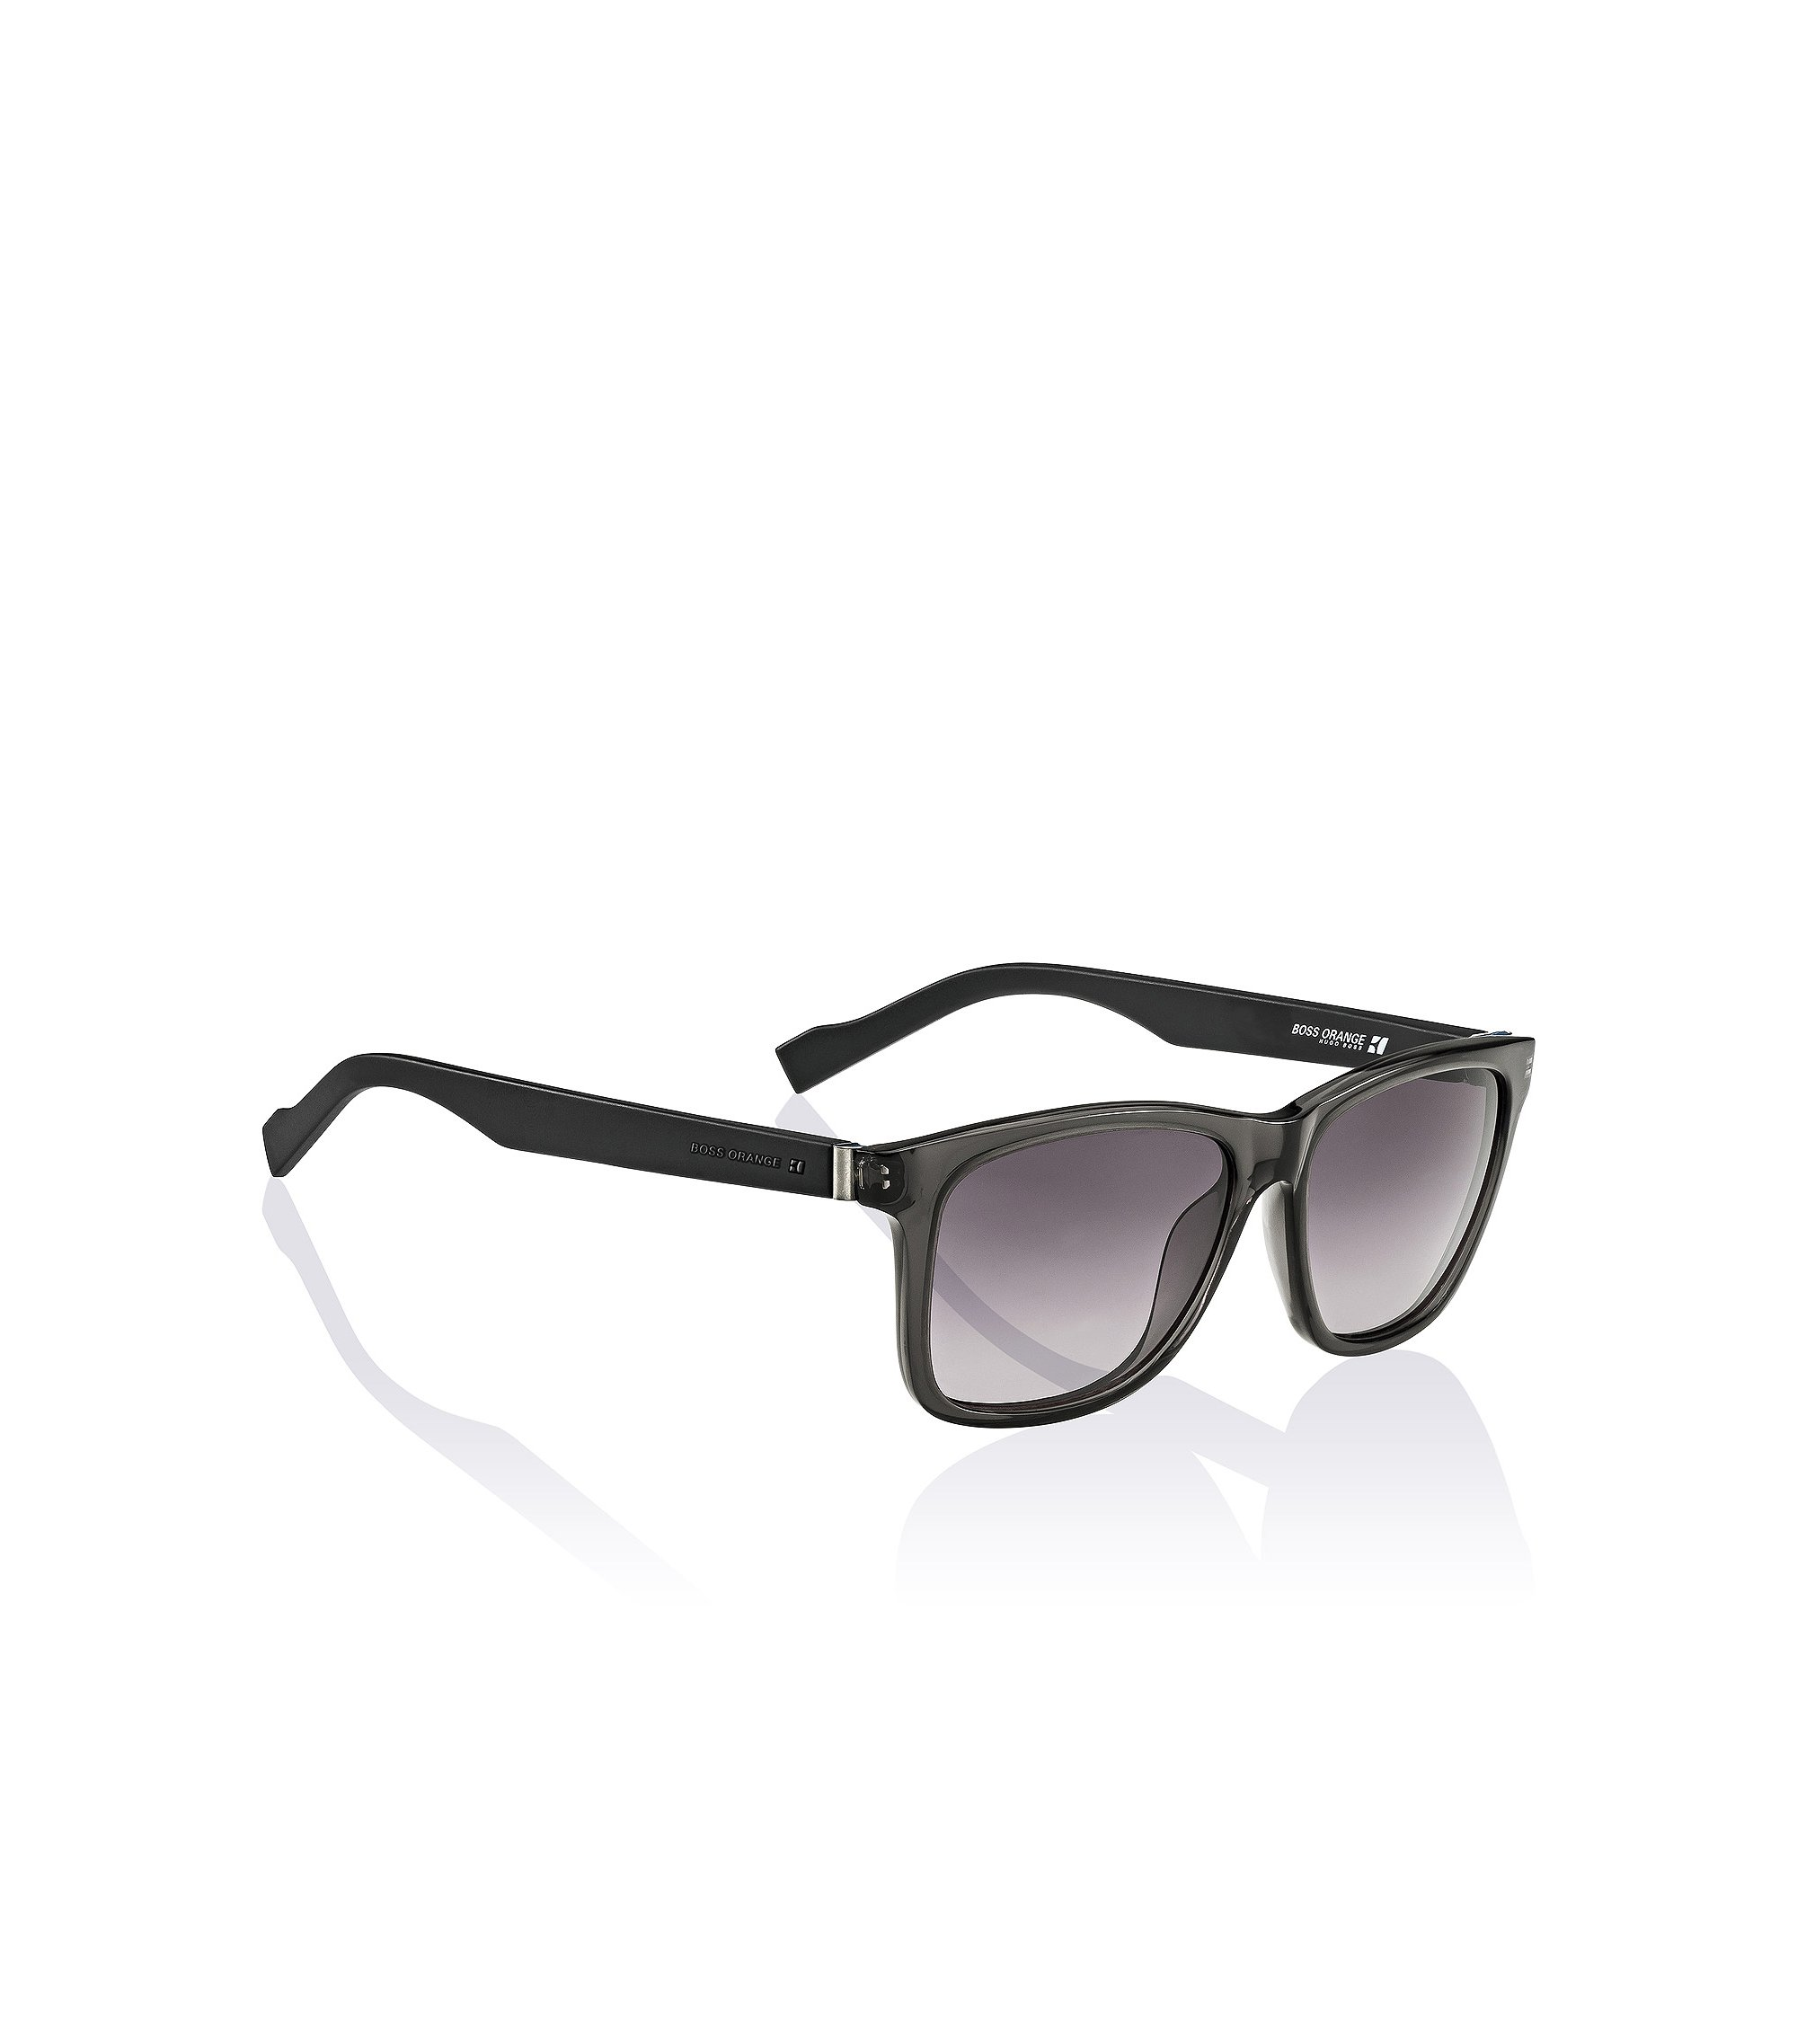 Sonnenbrille ´BO 0117/S `, Assorted-Pre-Pack